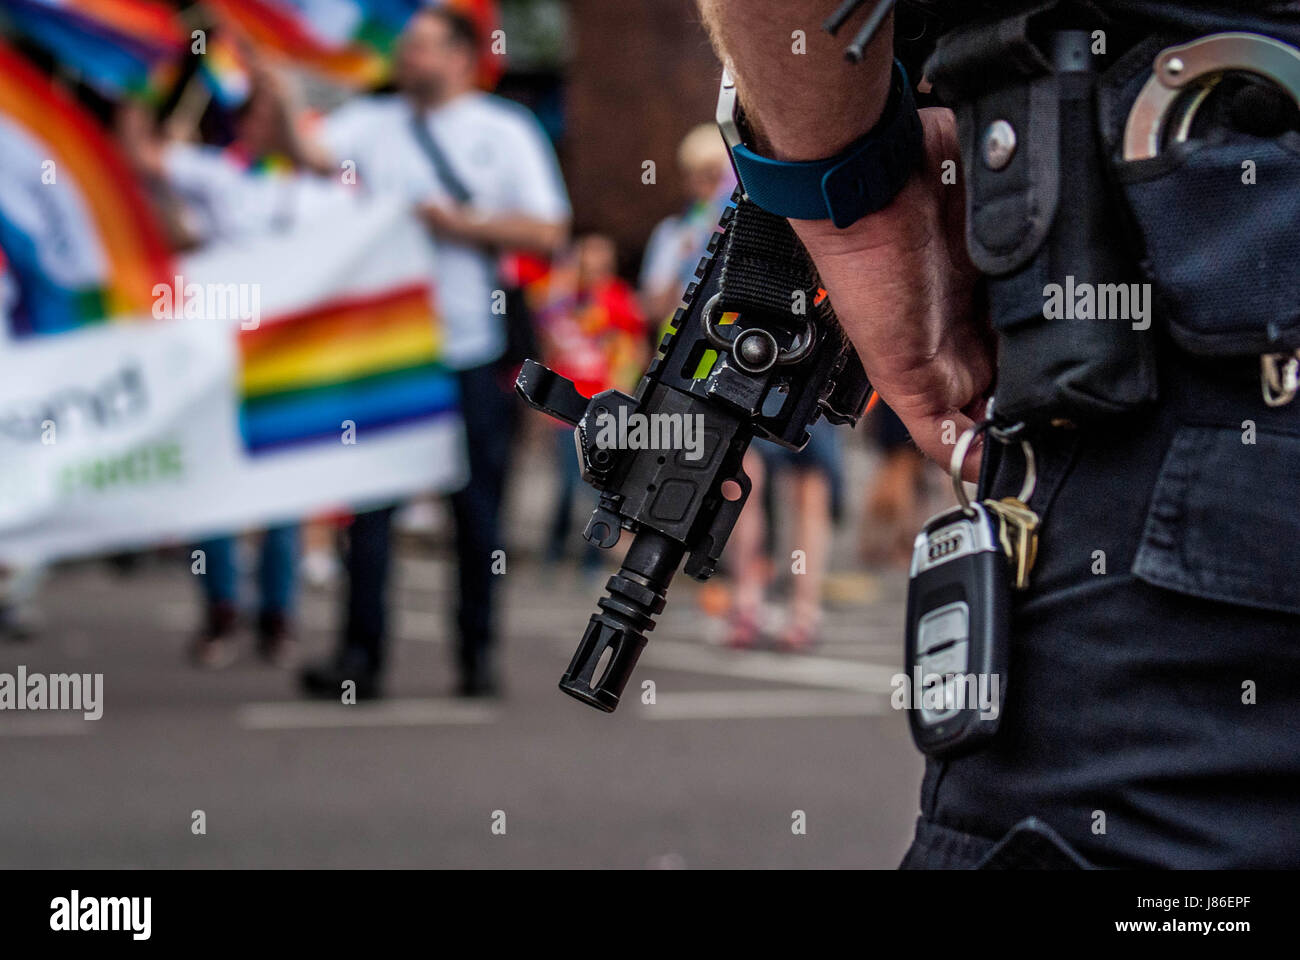 Birmingham, United Kingdom. 27th May 2017.  Armed police patrol the streets amid hightened security in the wake - Stock Image